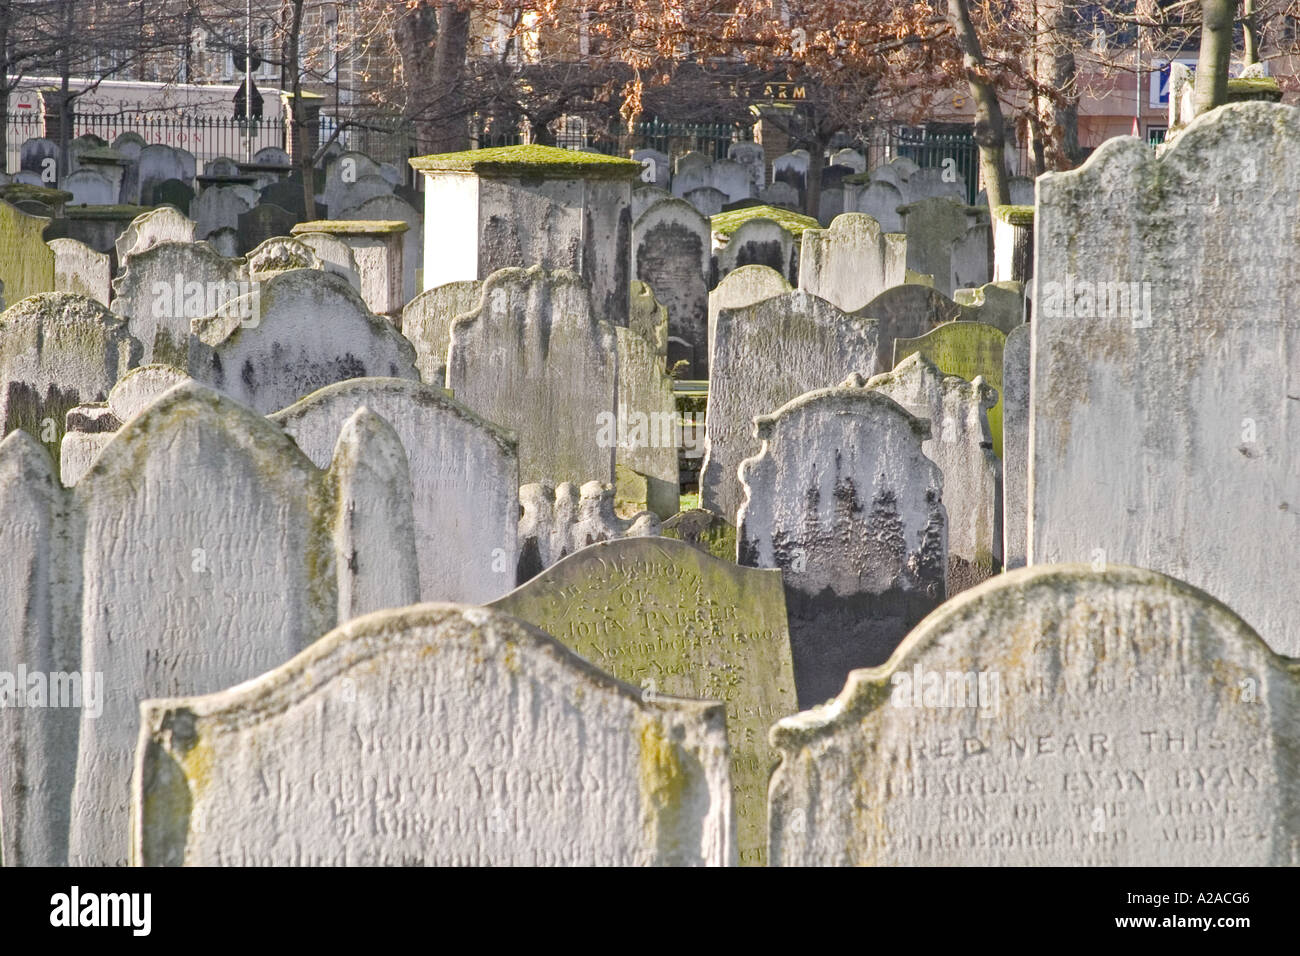 Gravestones in Bunhill Fields, London, England - Stock Image